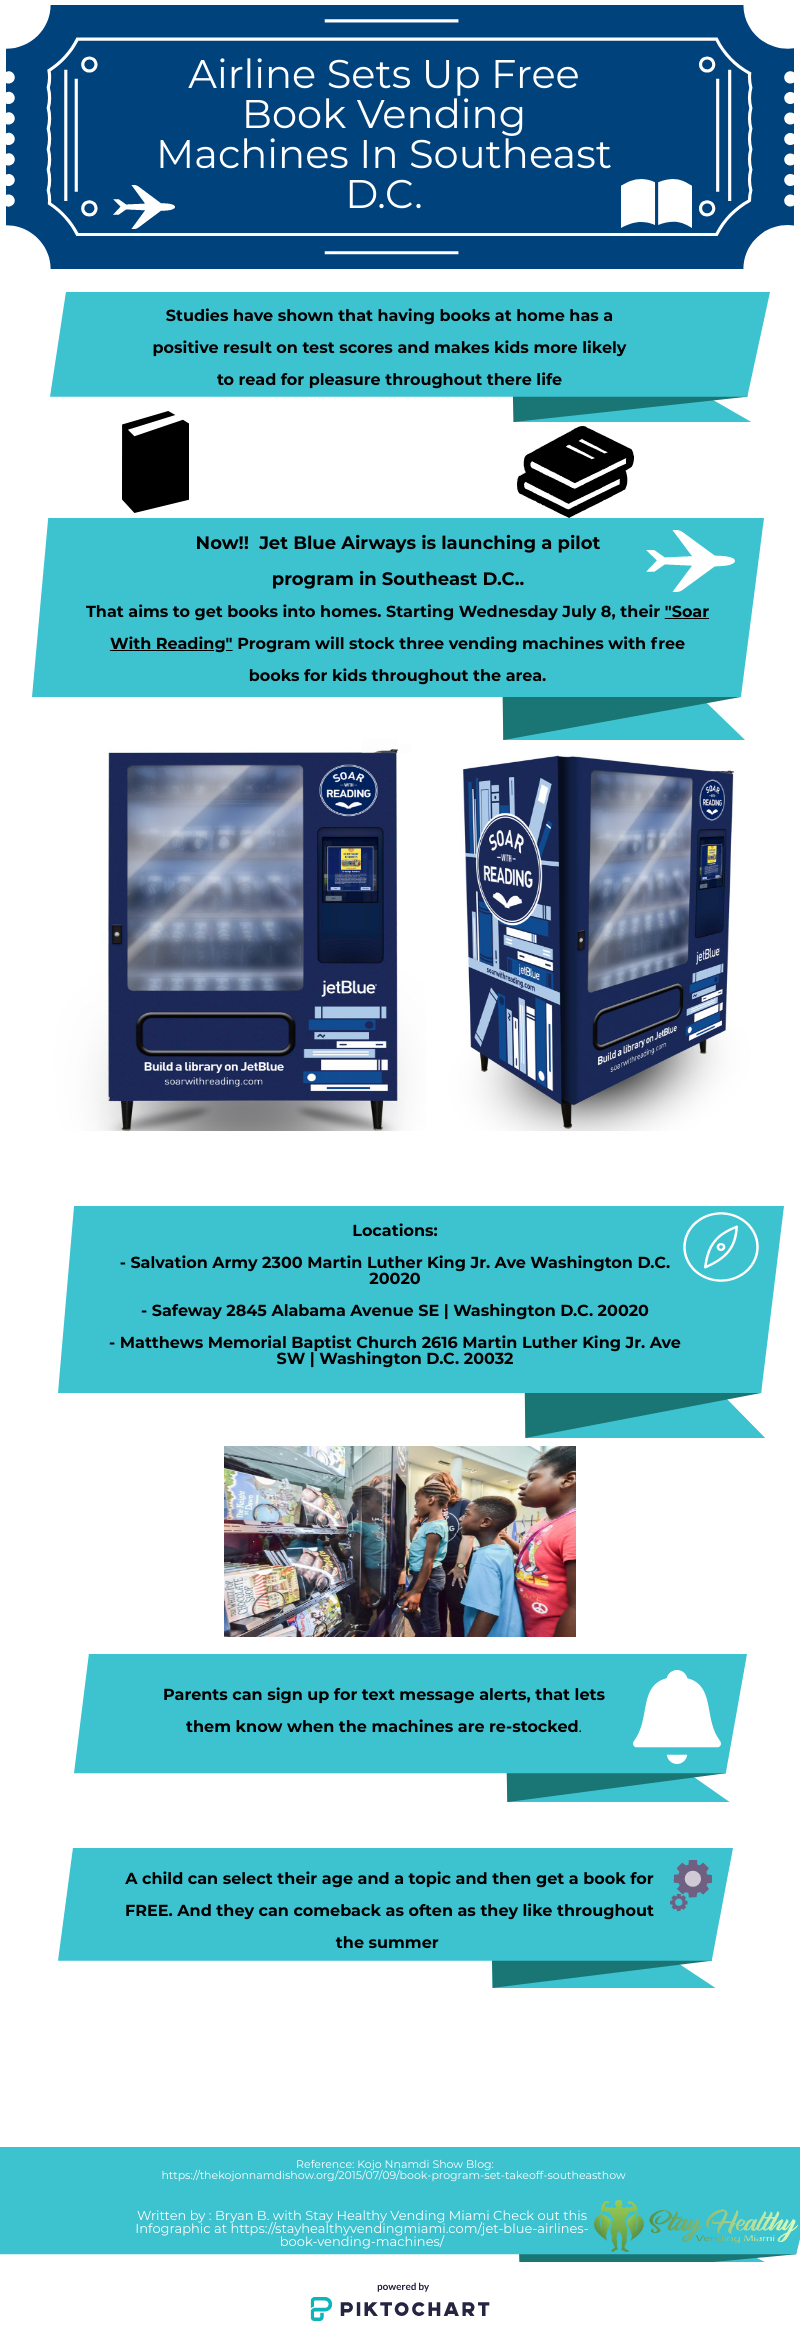 Jet-Blue-Airlines-Book-Vending-Machines